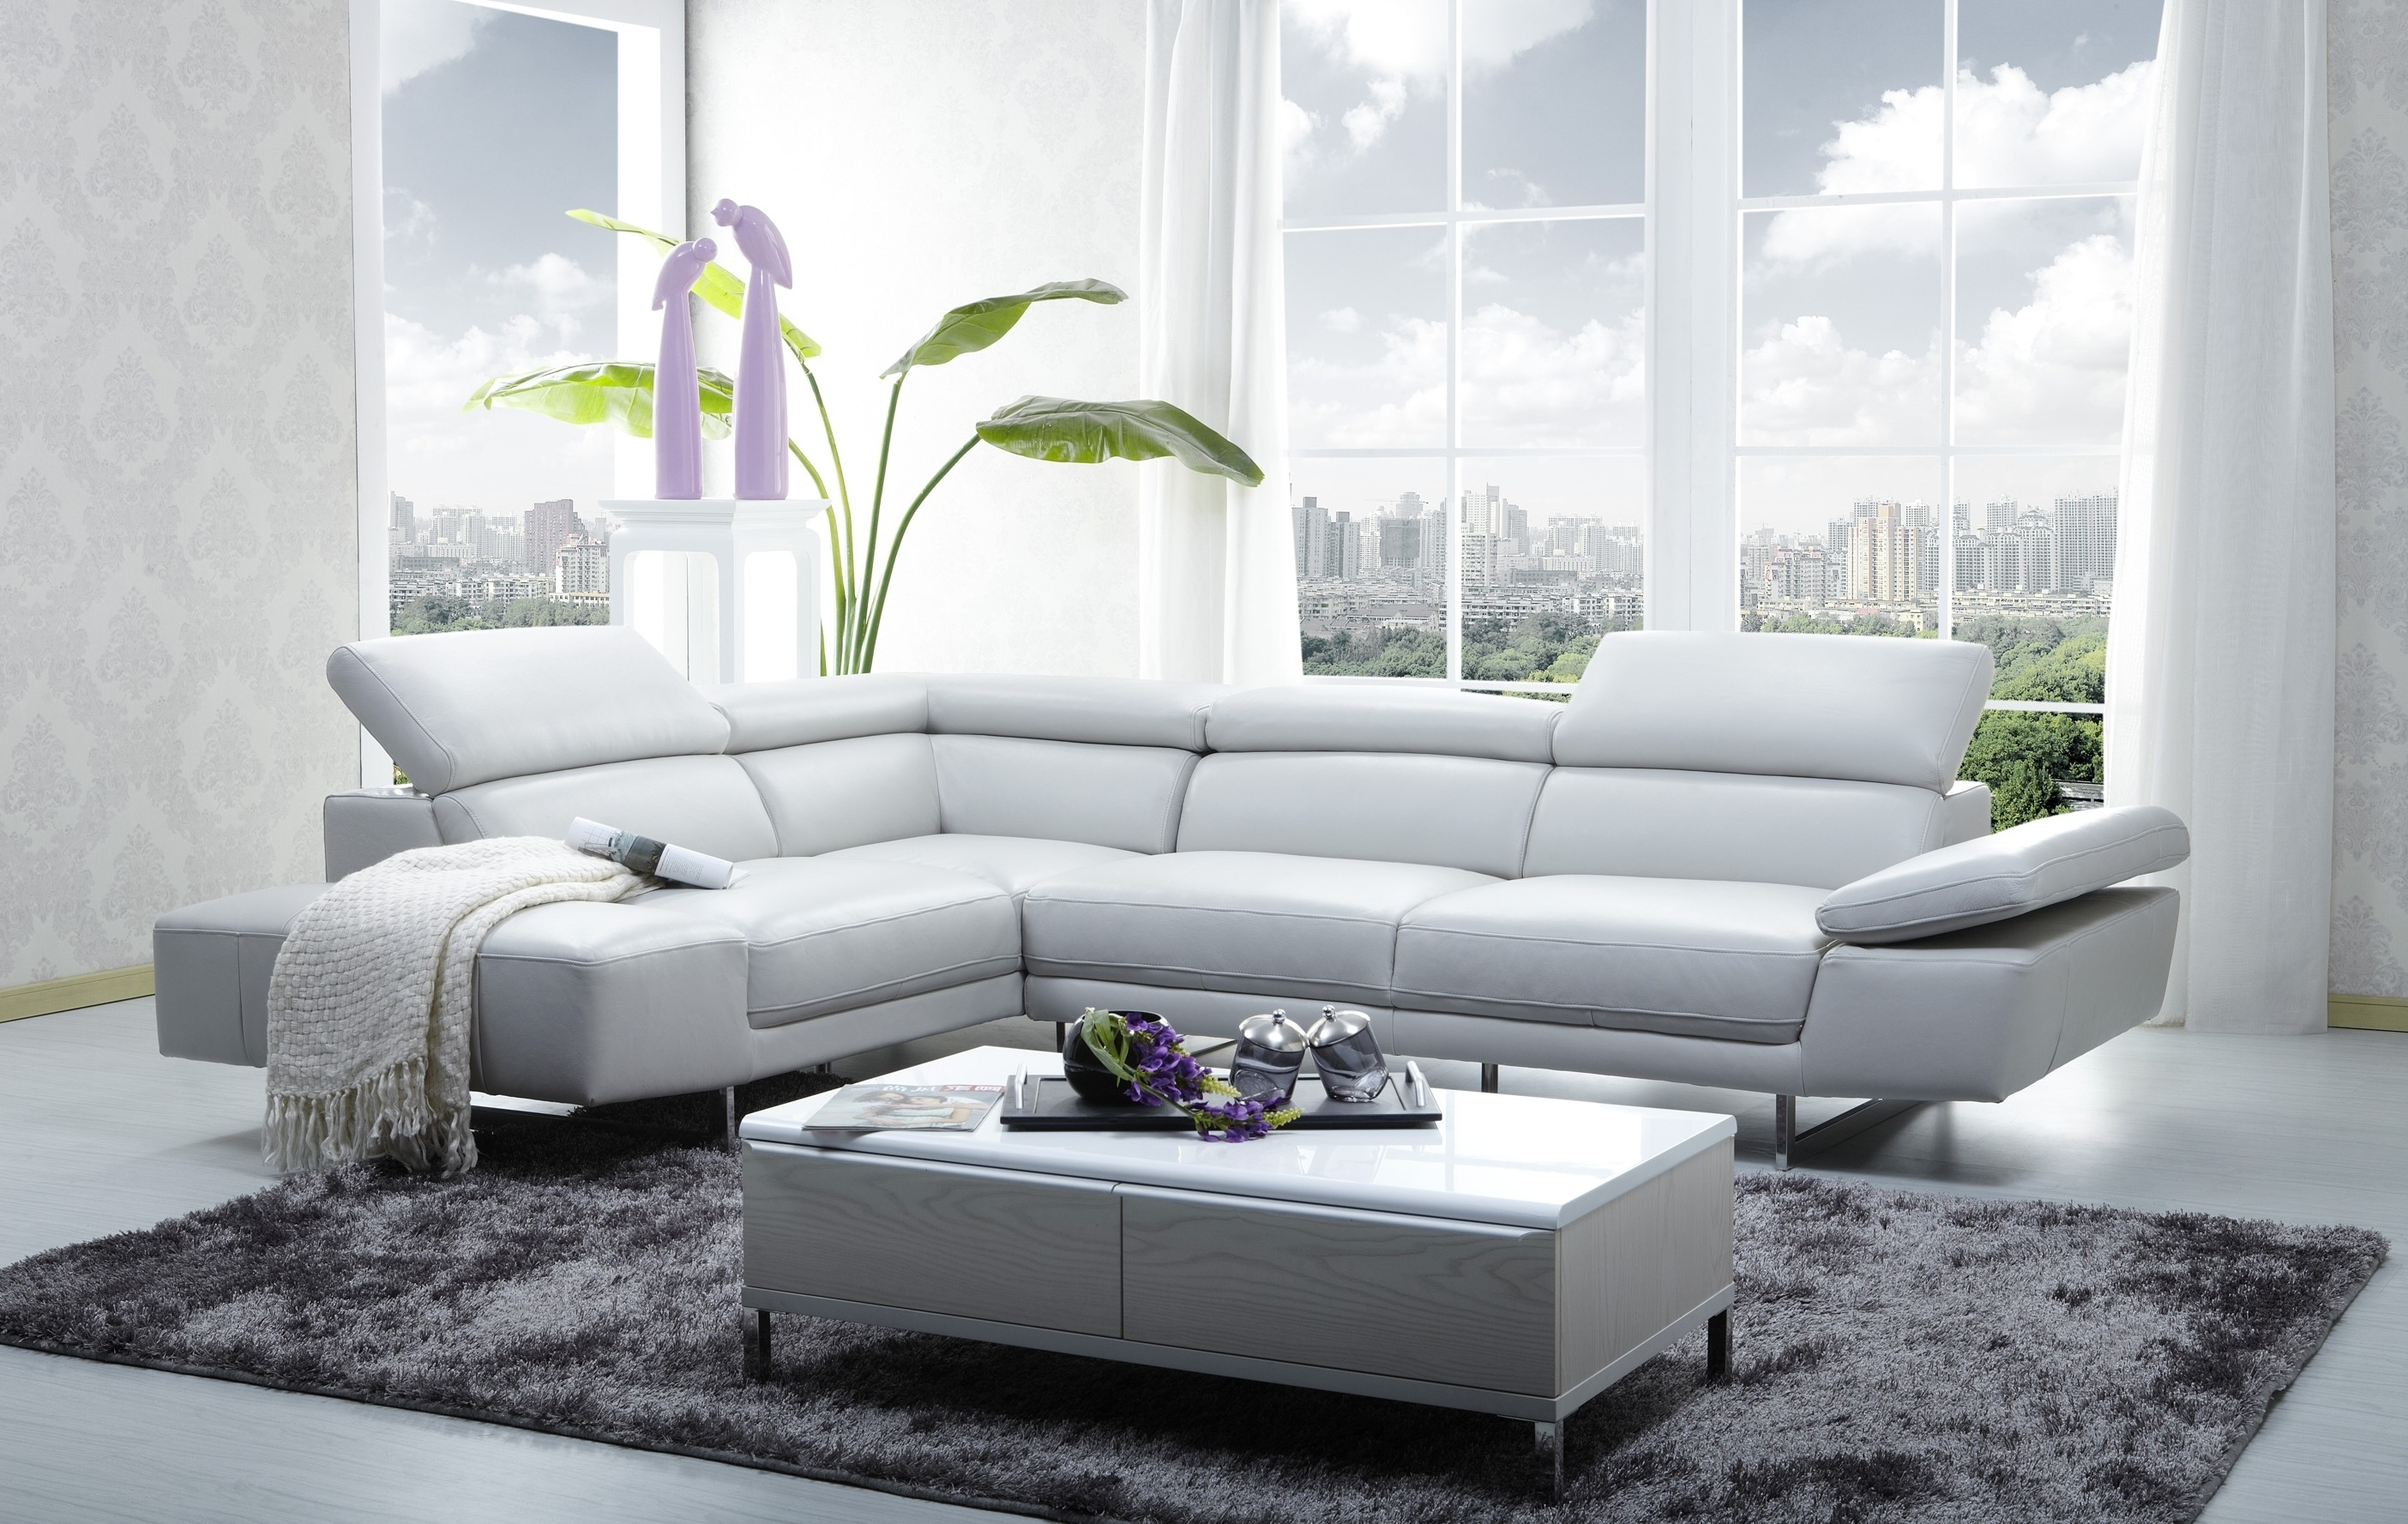 1717 Italian Leather Modern Sectional Sofa With Regard To Newest Modern Sofas (Gallery 4 of 20)